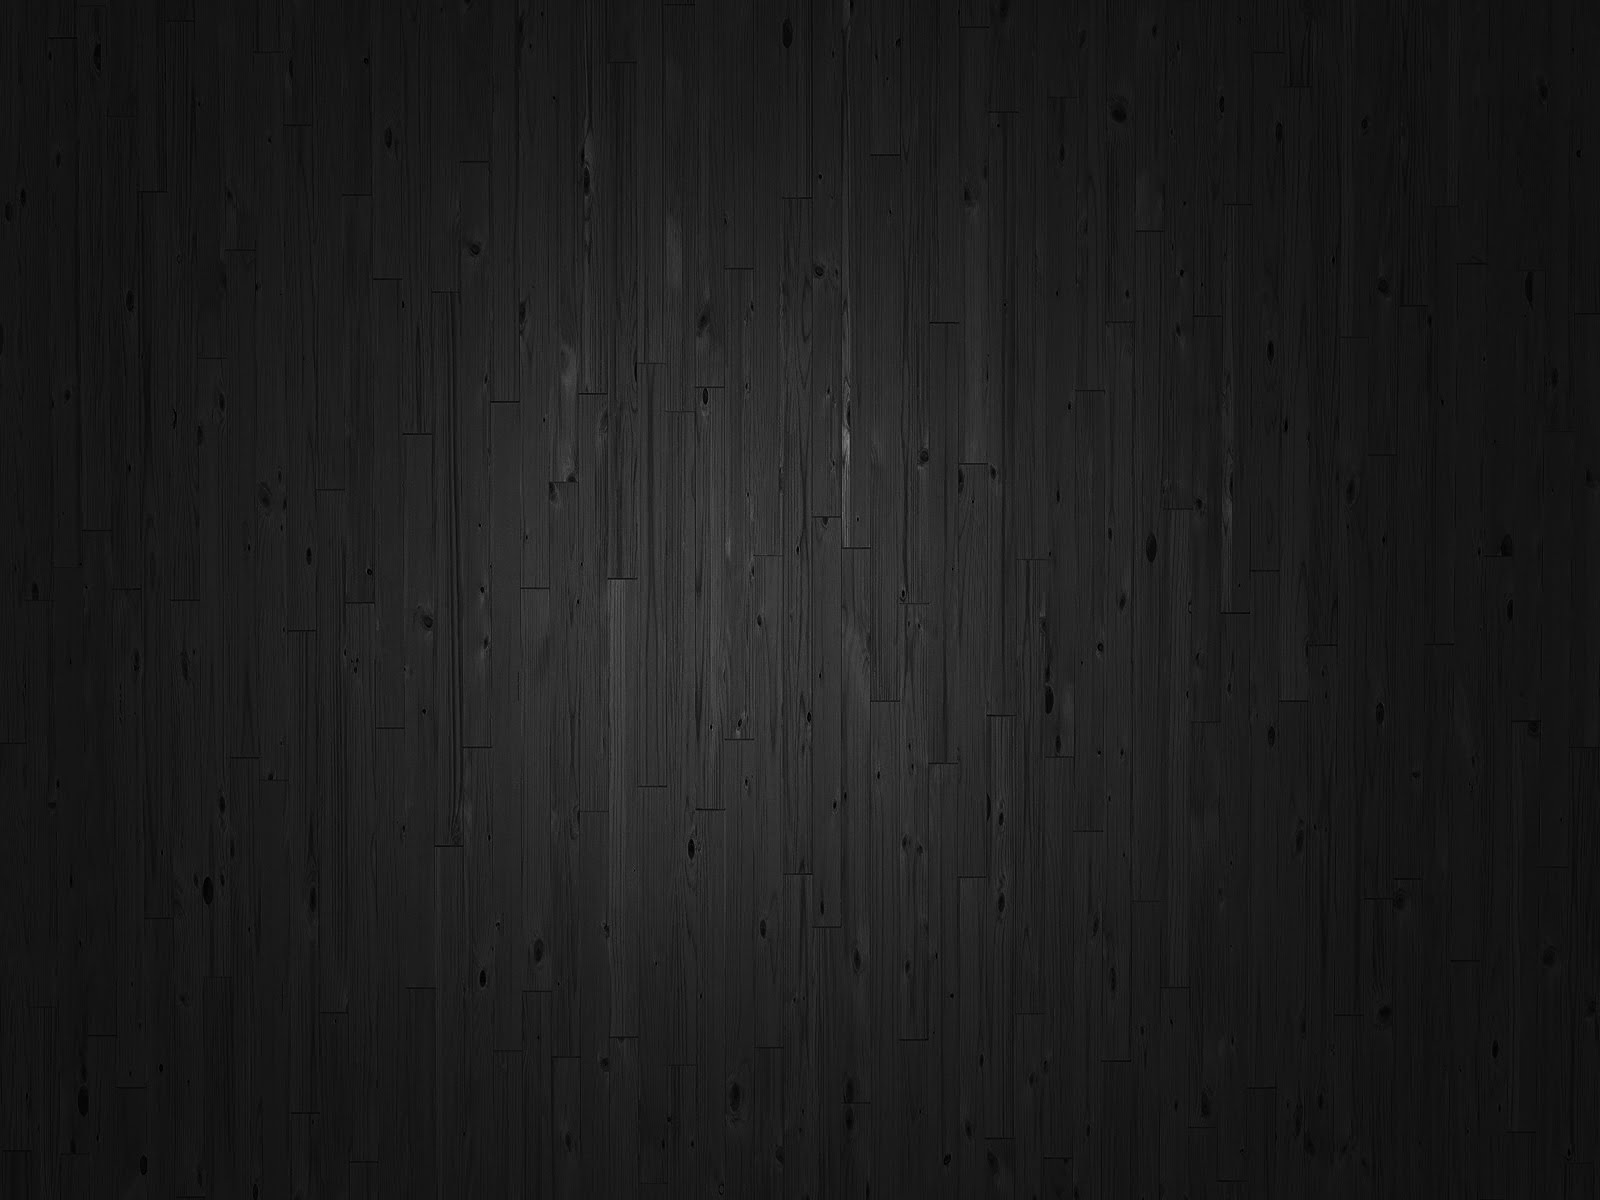 wallpapers box black wood hd backgrounds high definition wallpapers. Black Bedroom Furniture Sets. Home Design Ideas